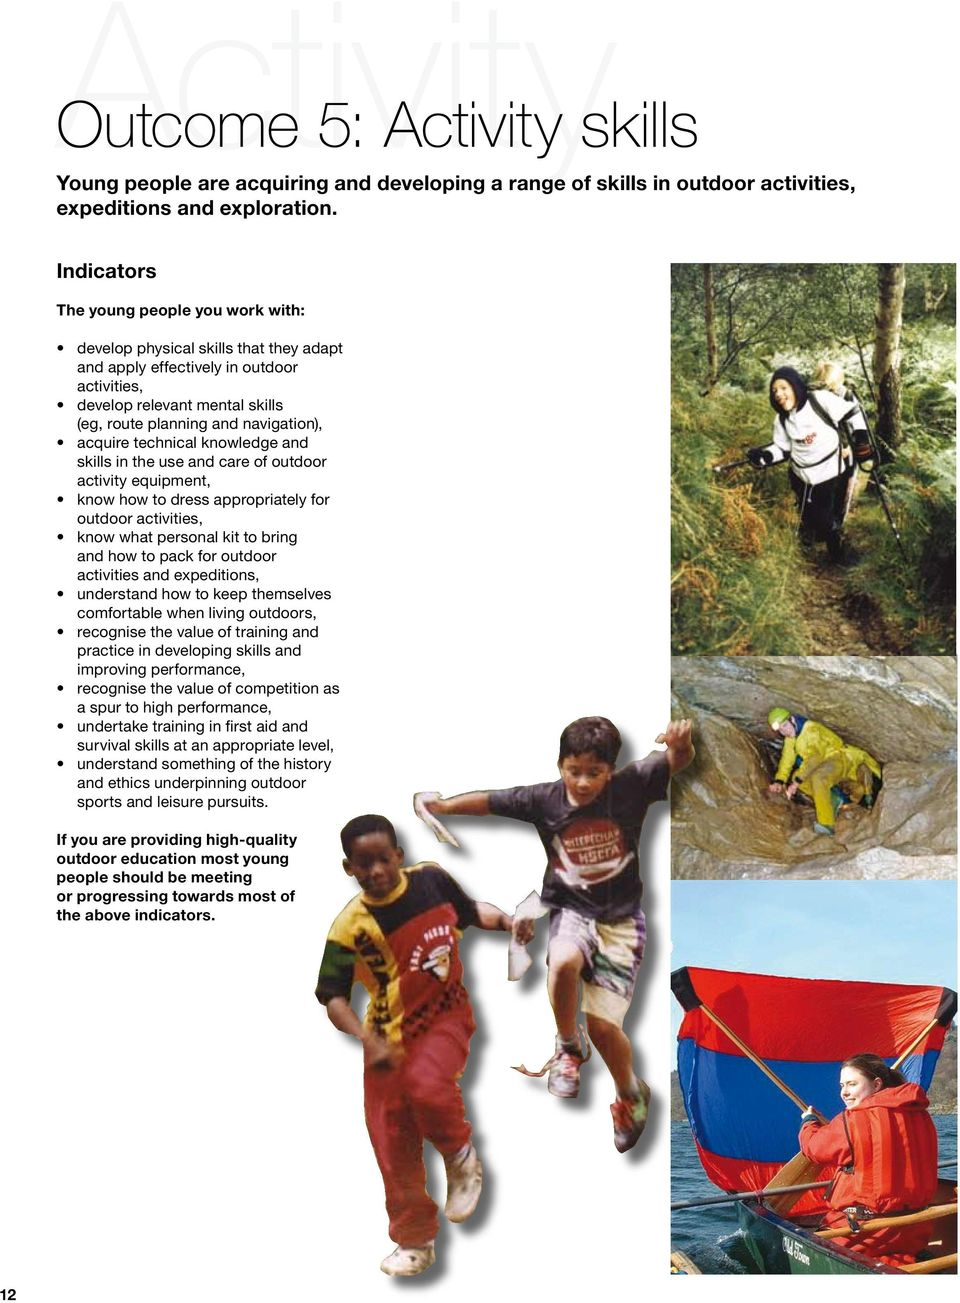 acquire technical knowledge and skills in the use and care of outdoor activity equipment, know how to dress appropriately for outdoor activities, know what personal kit to bring and how to pack for